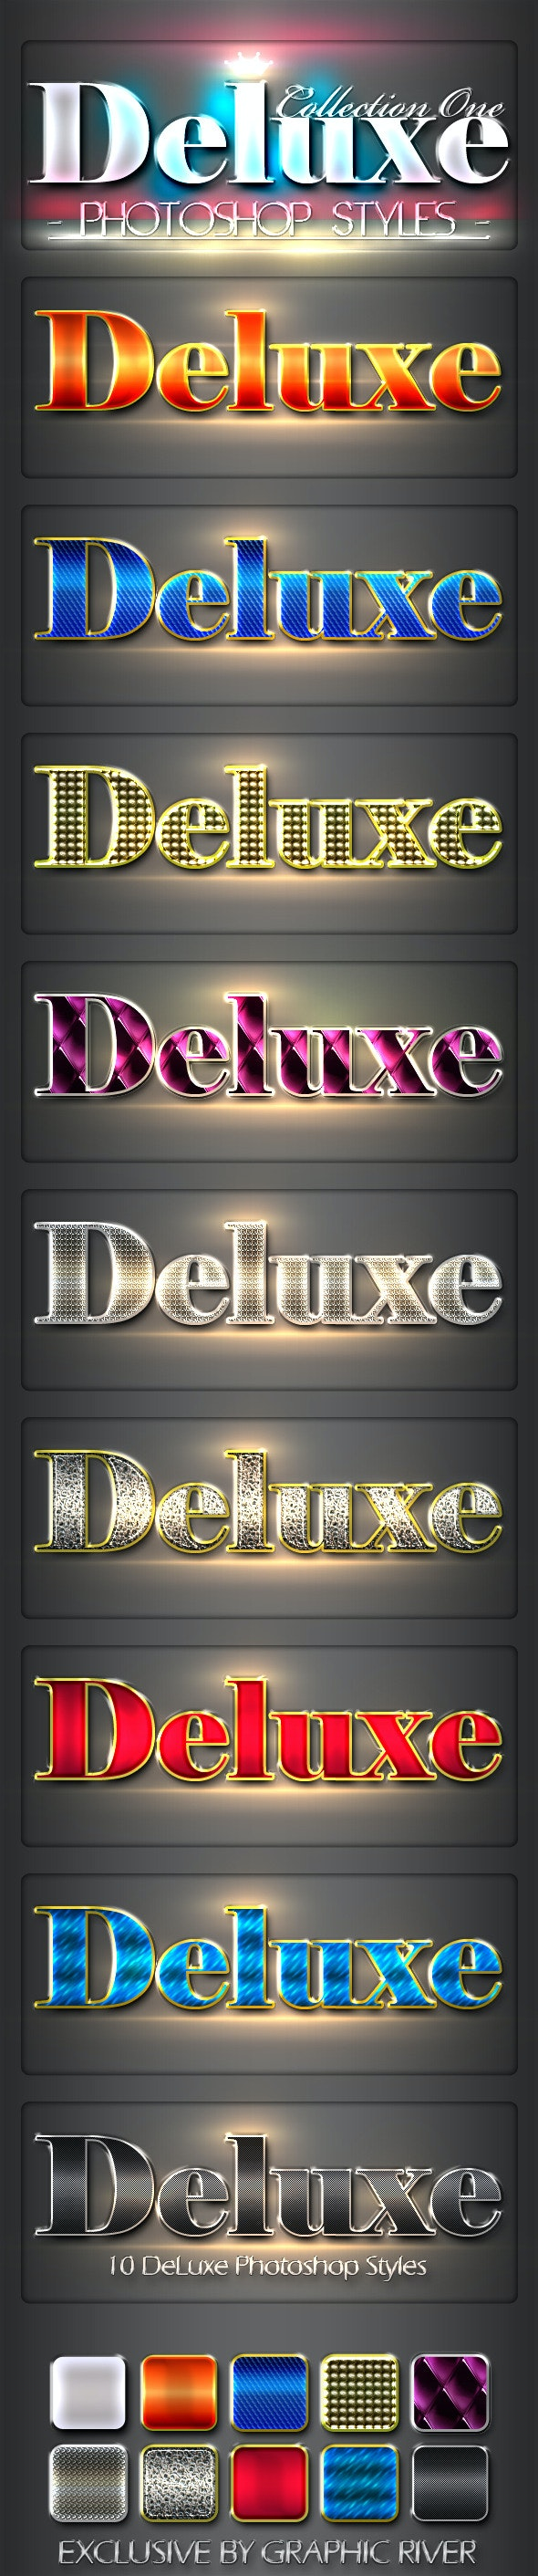 10 DeLuxe Photoshop Layer Styles - Text Effects Styles